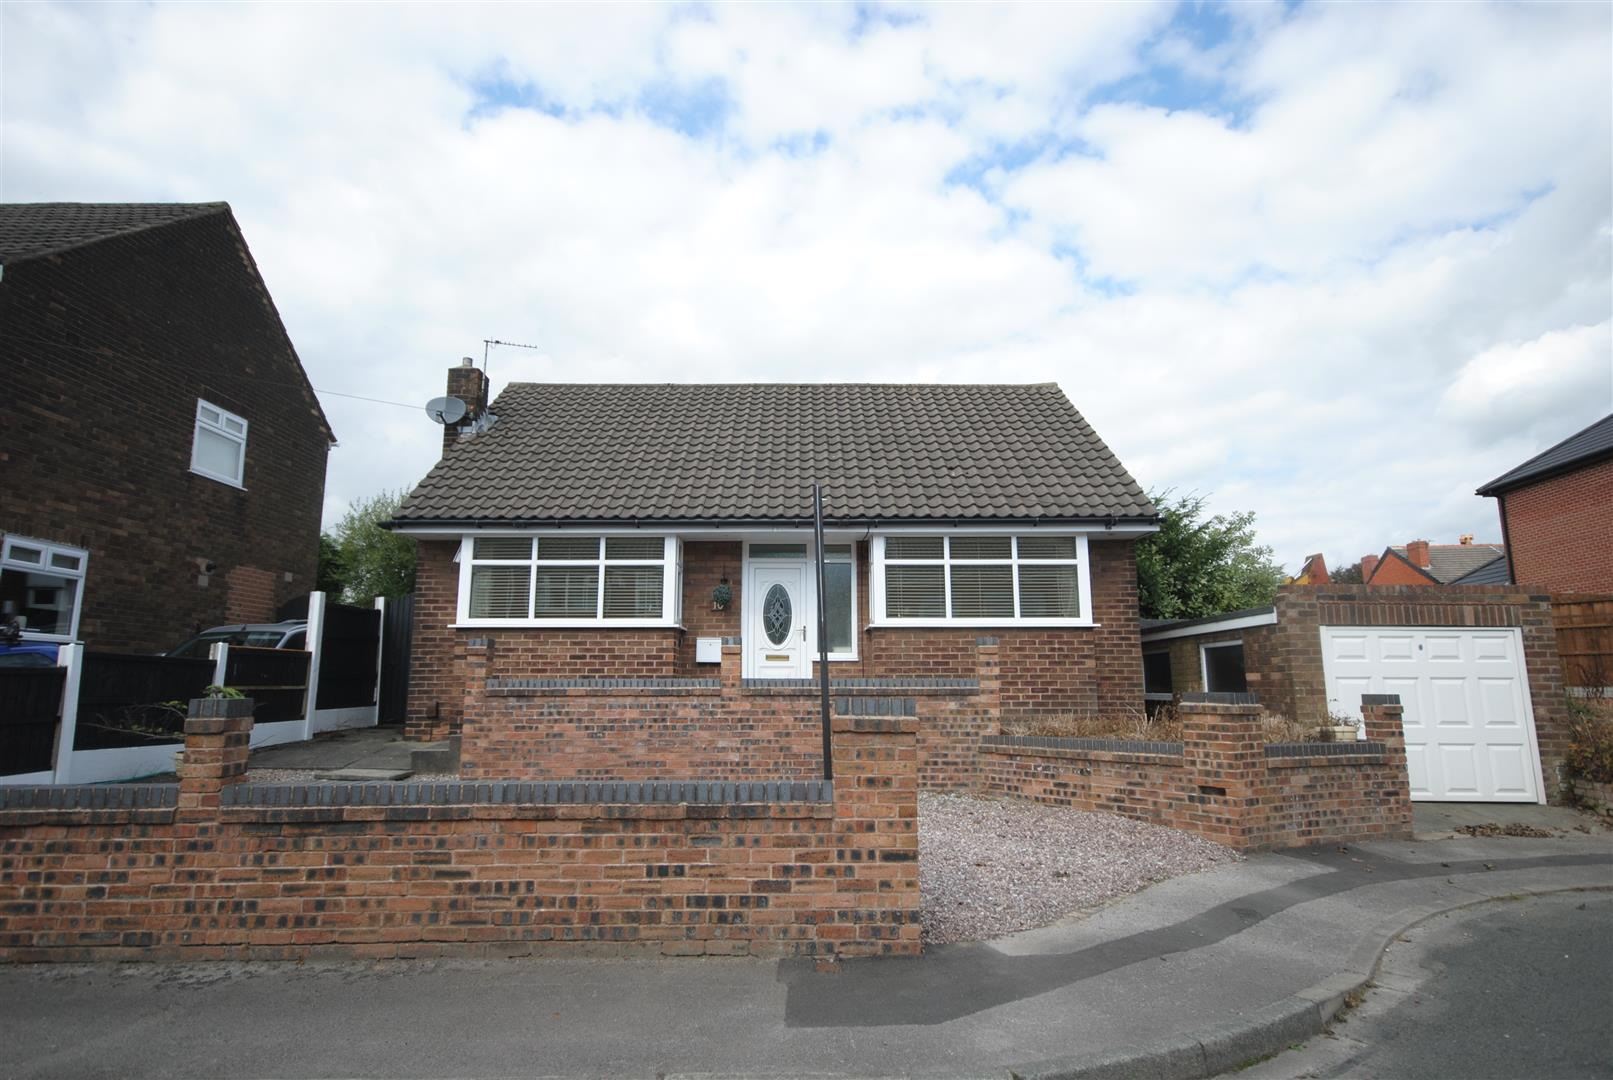 2 Bedrooms Detached Bungalow for sale in Stroud Close, Whelley, Wigan